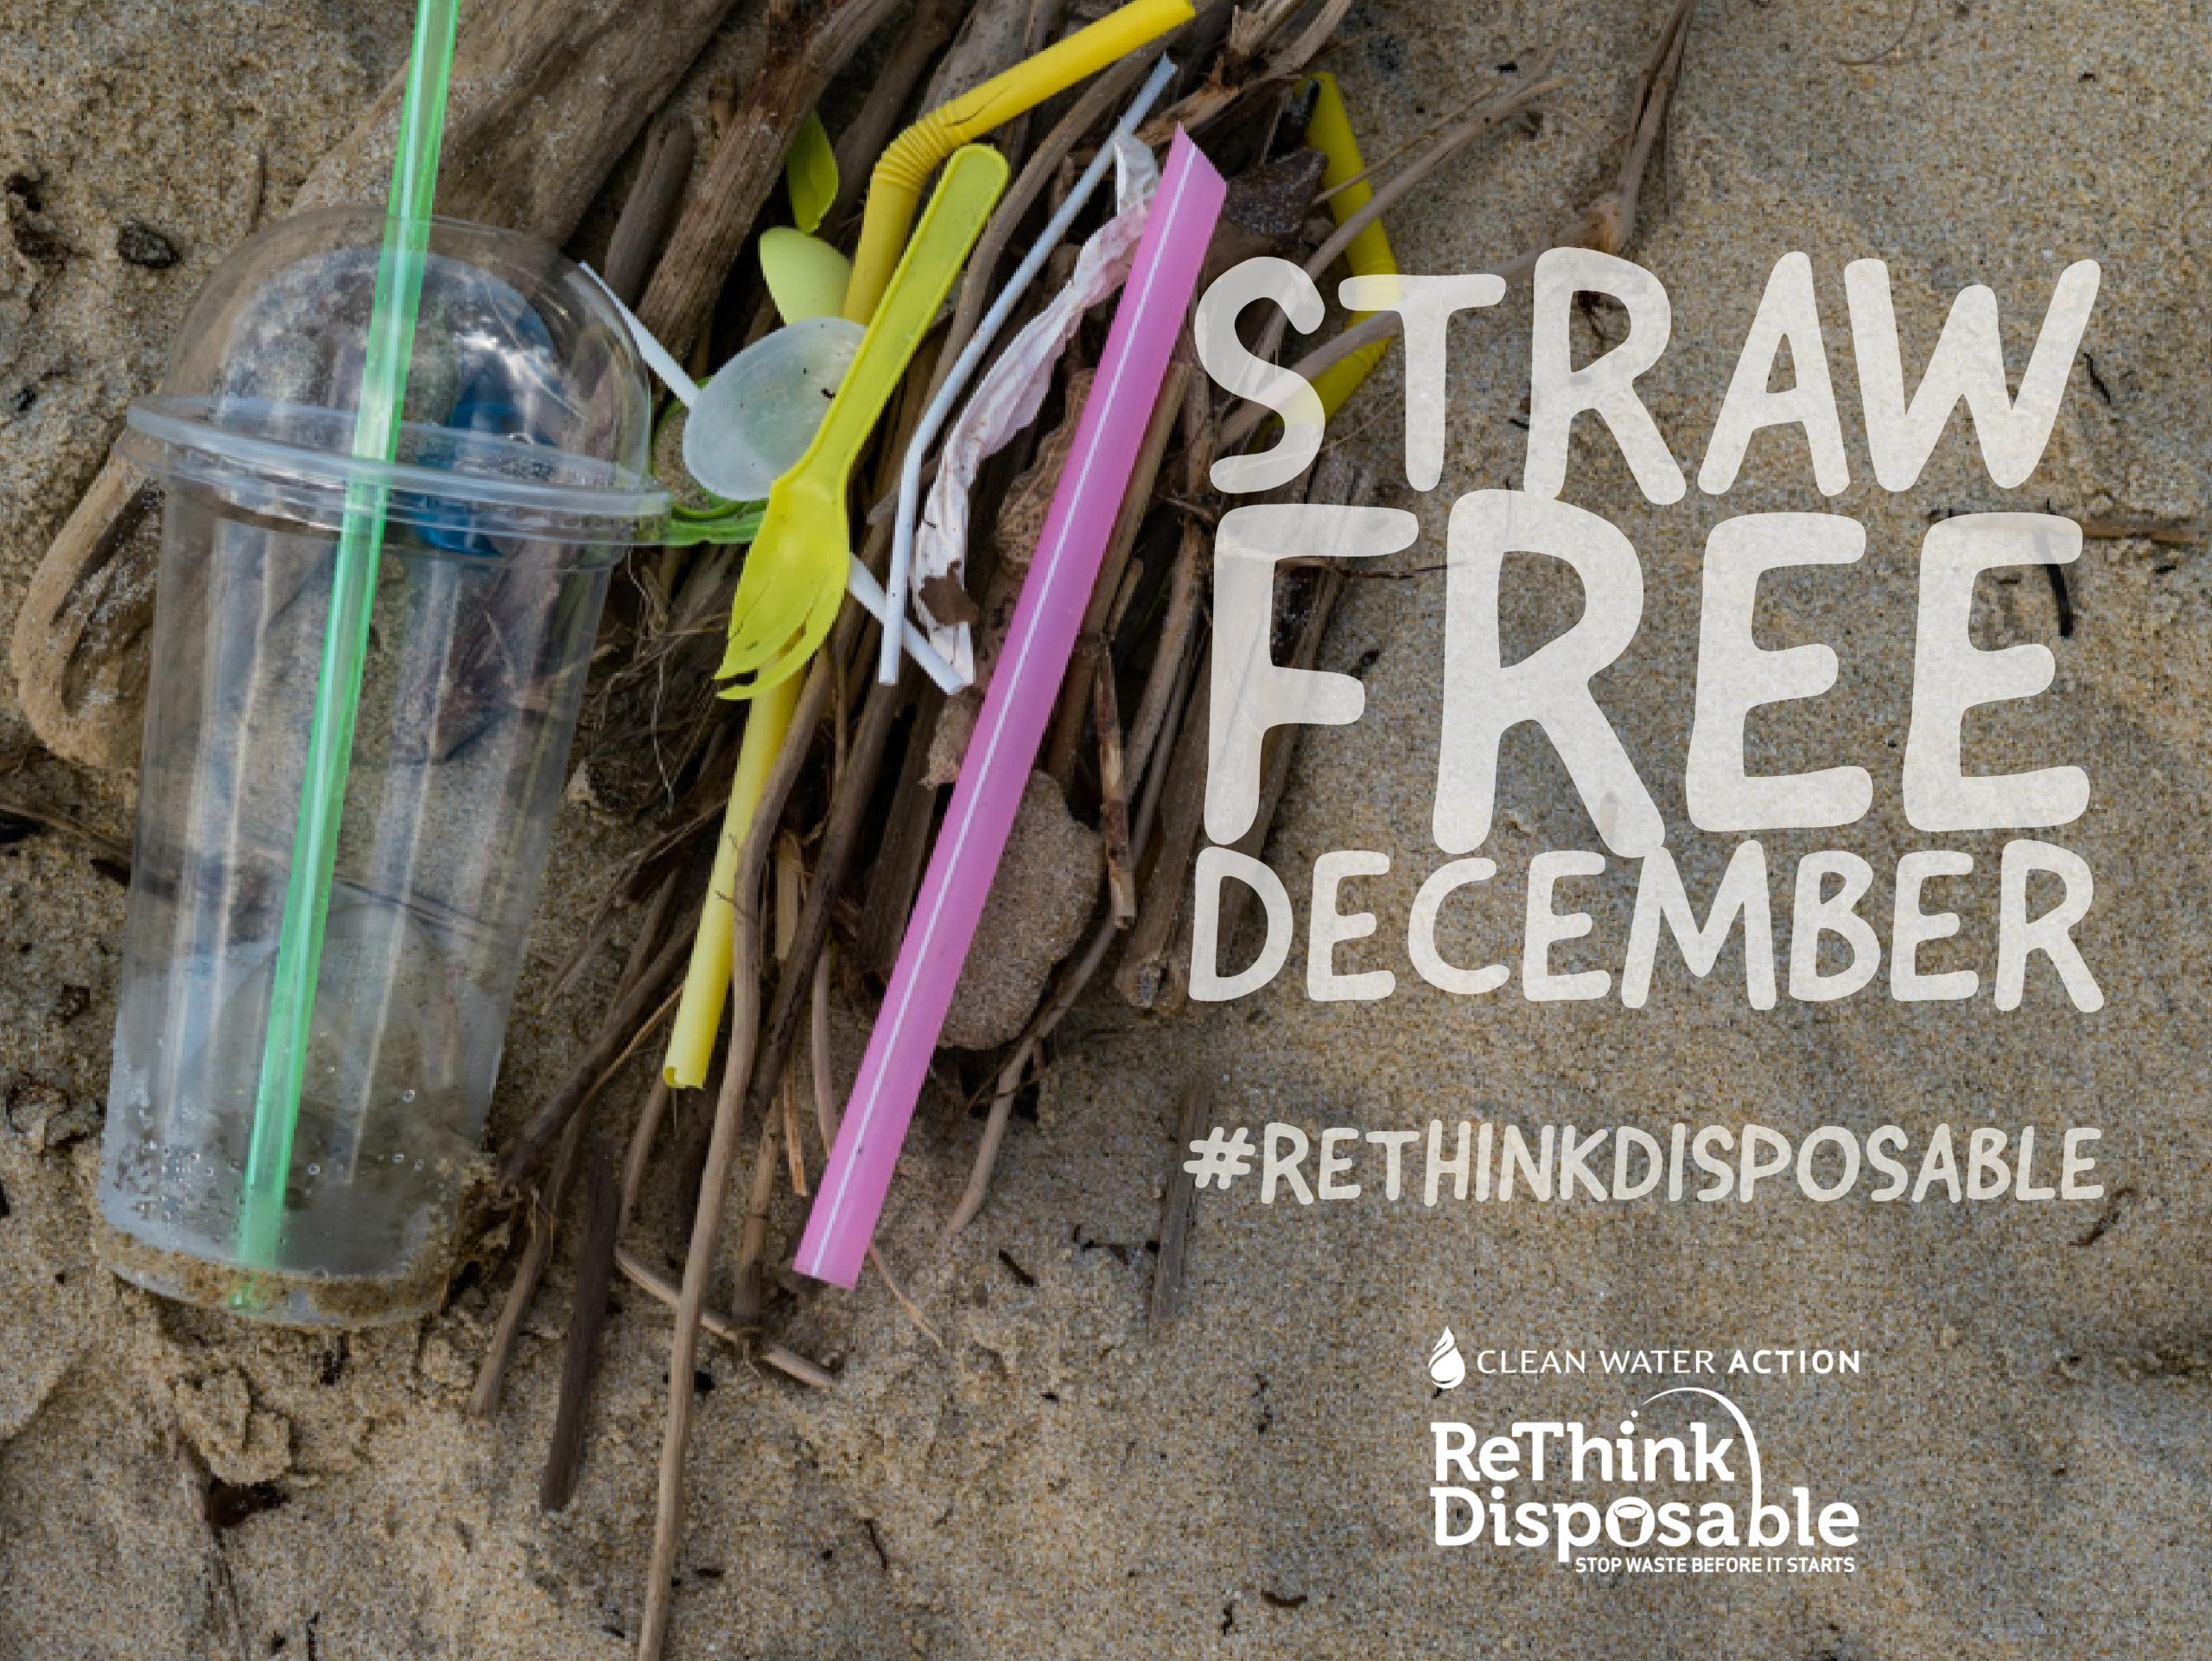 New Jersey_Rethink Disposable_Straw Free December_Clean Water Action